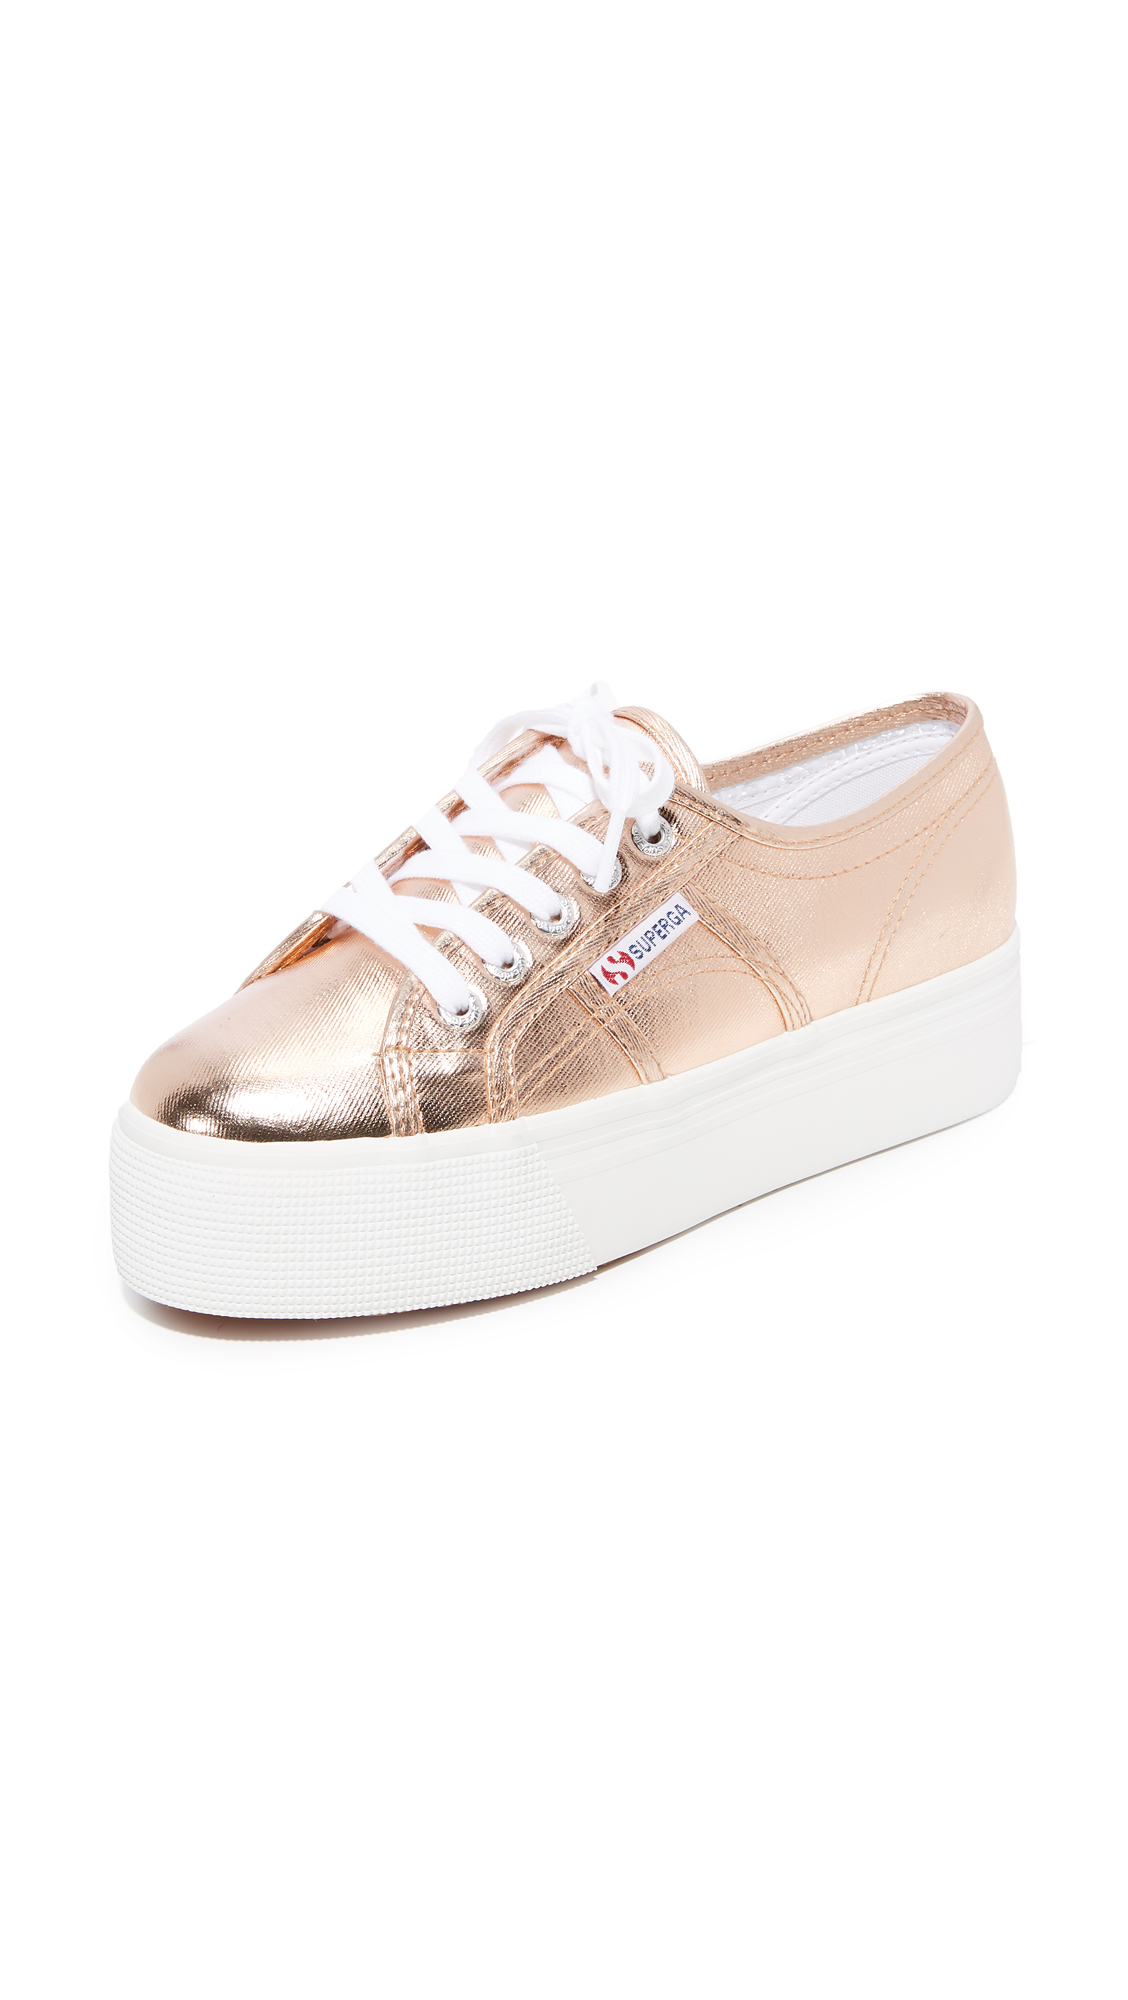 Superga 2750 Cotu Metallic Platform Sneakers - Rose Gold